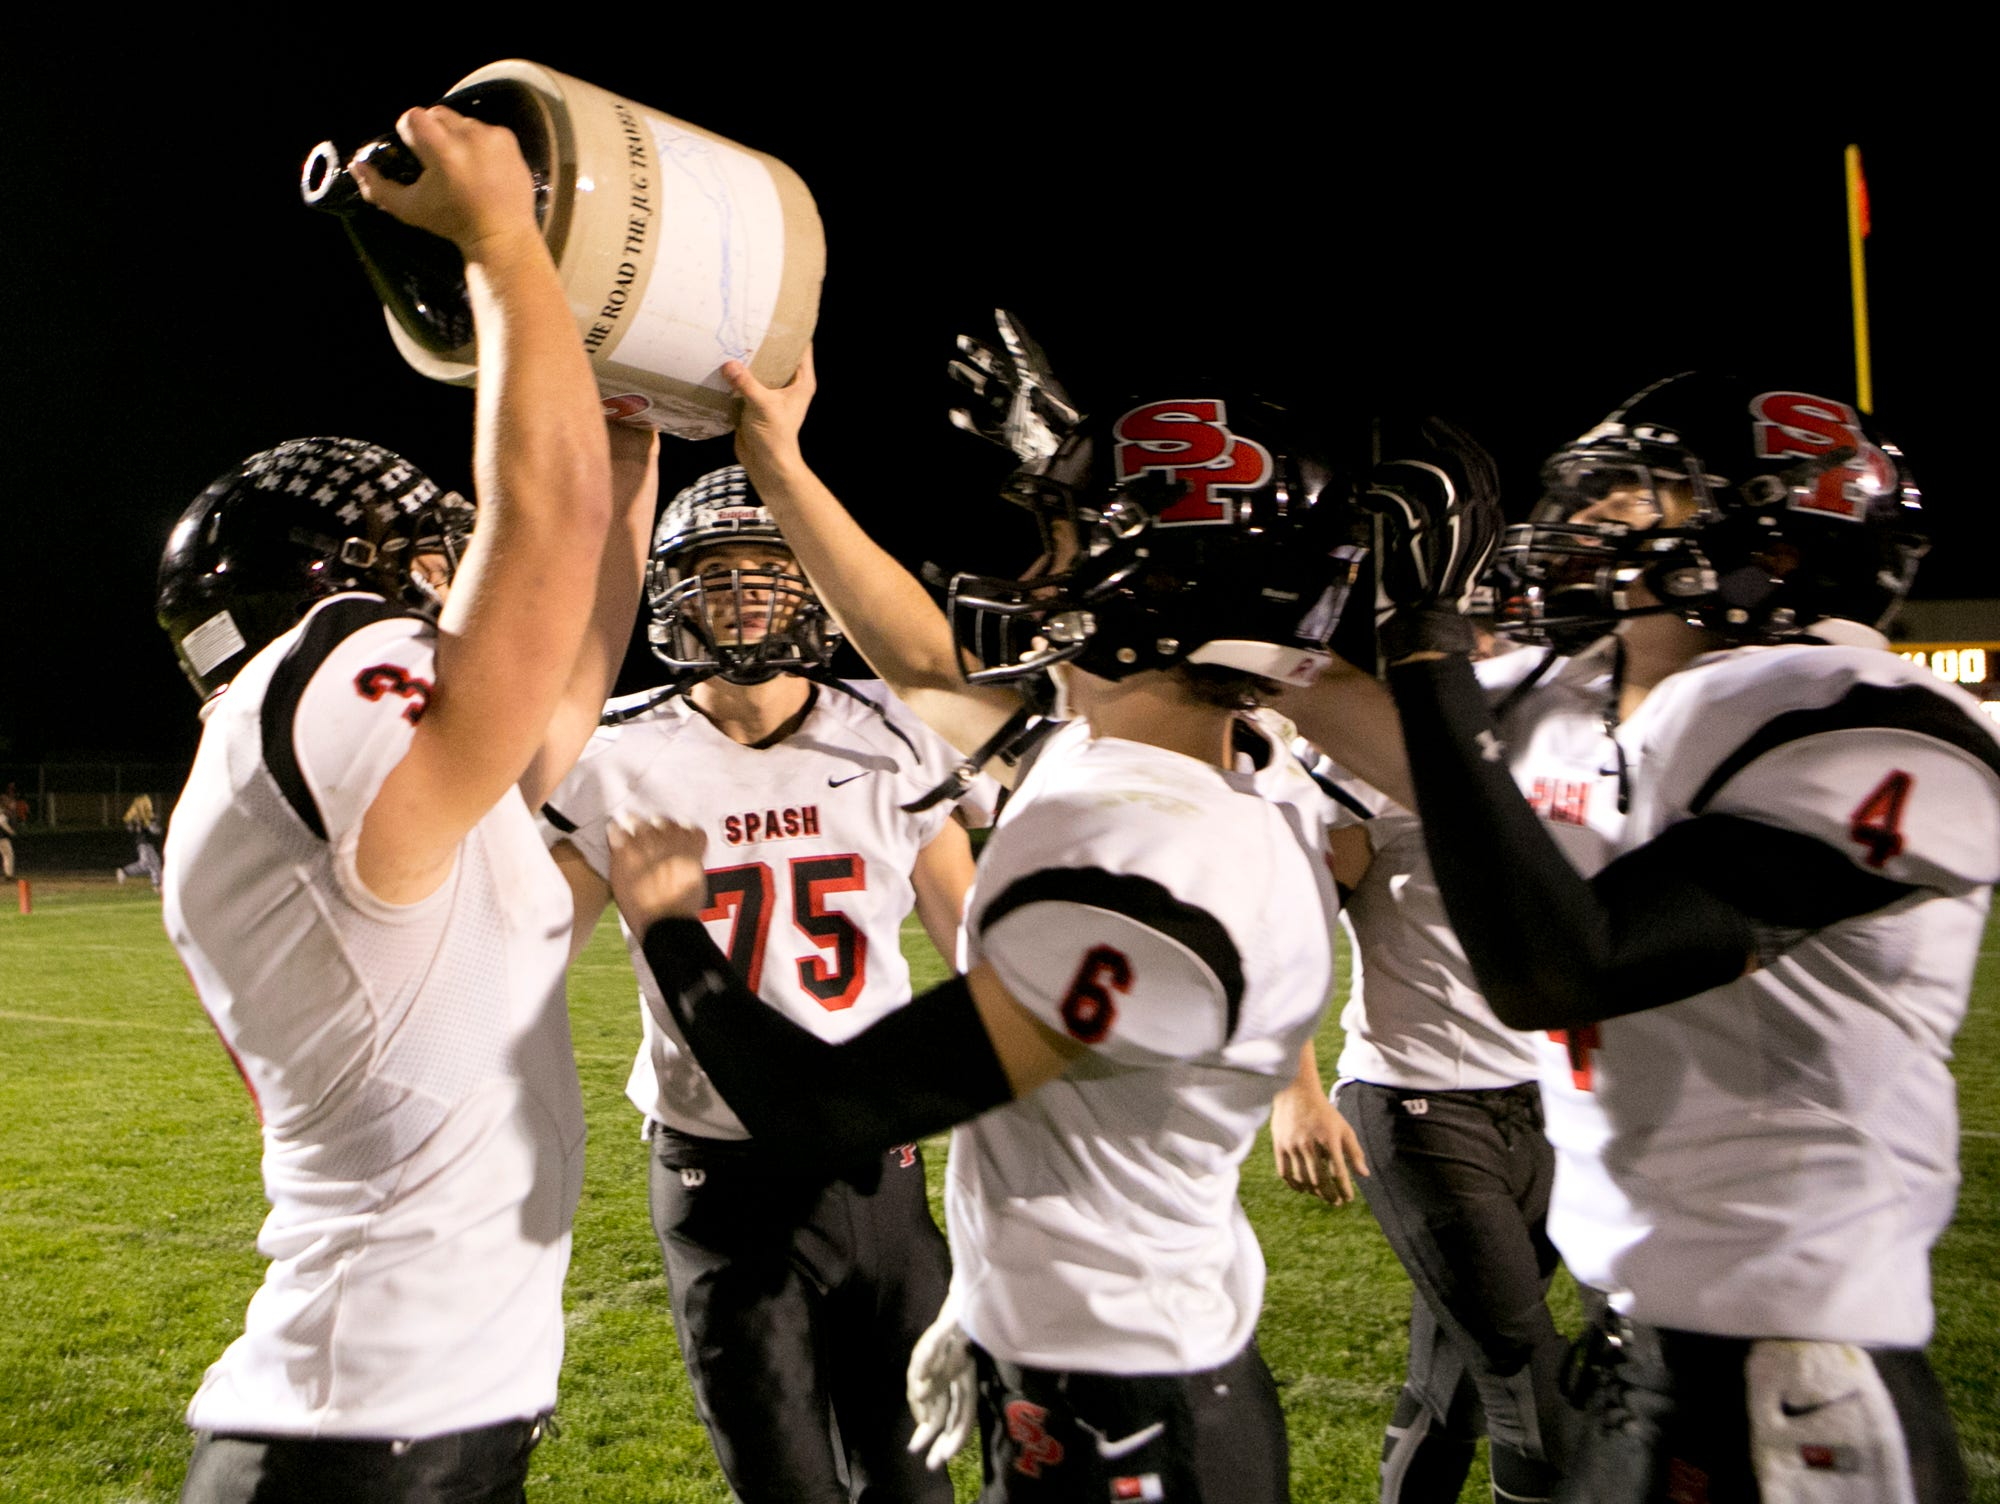 SPASH defeated Wisconsin Rapids 38-14 for the Old River Jug in a Wisconsin Valley Conference football game at South Wood County Recreation Center in Wisconsin Rapids, Friday, Sept. 25, 2015.